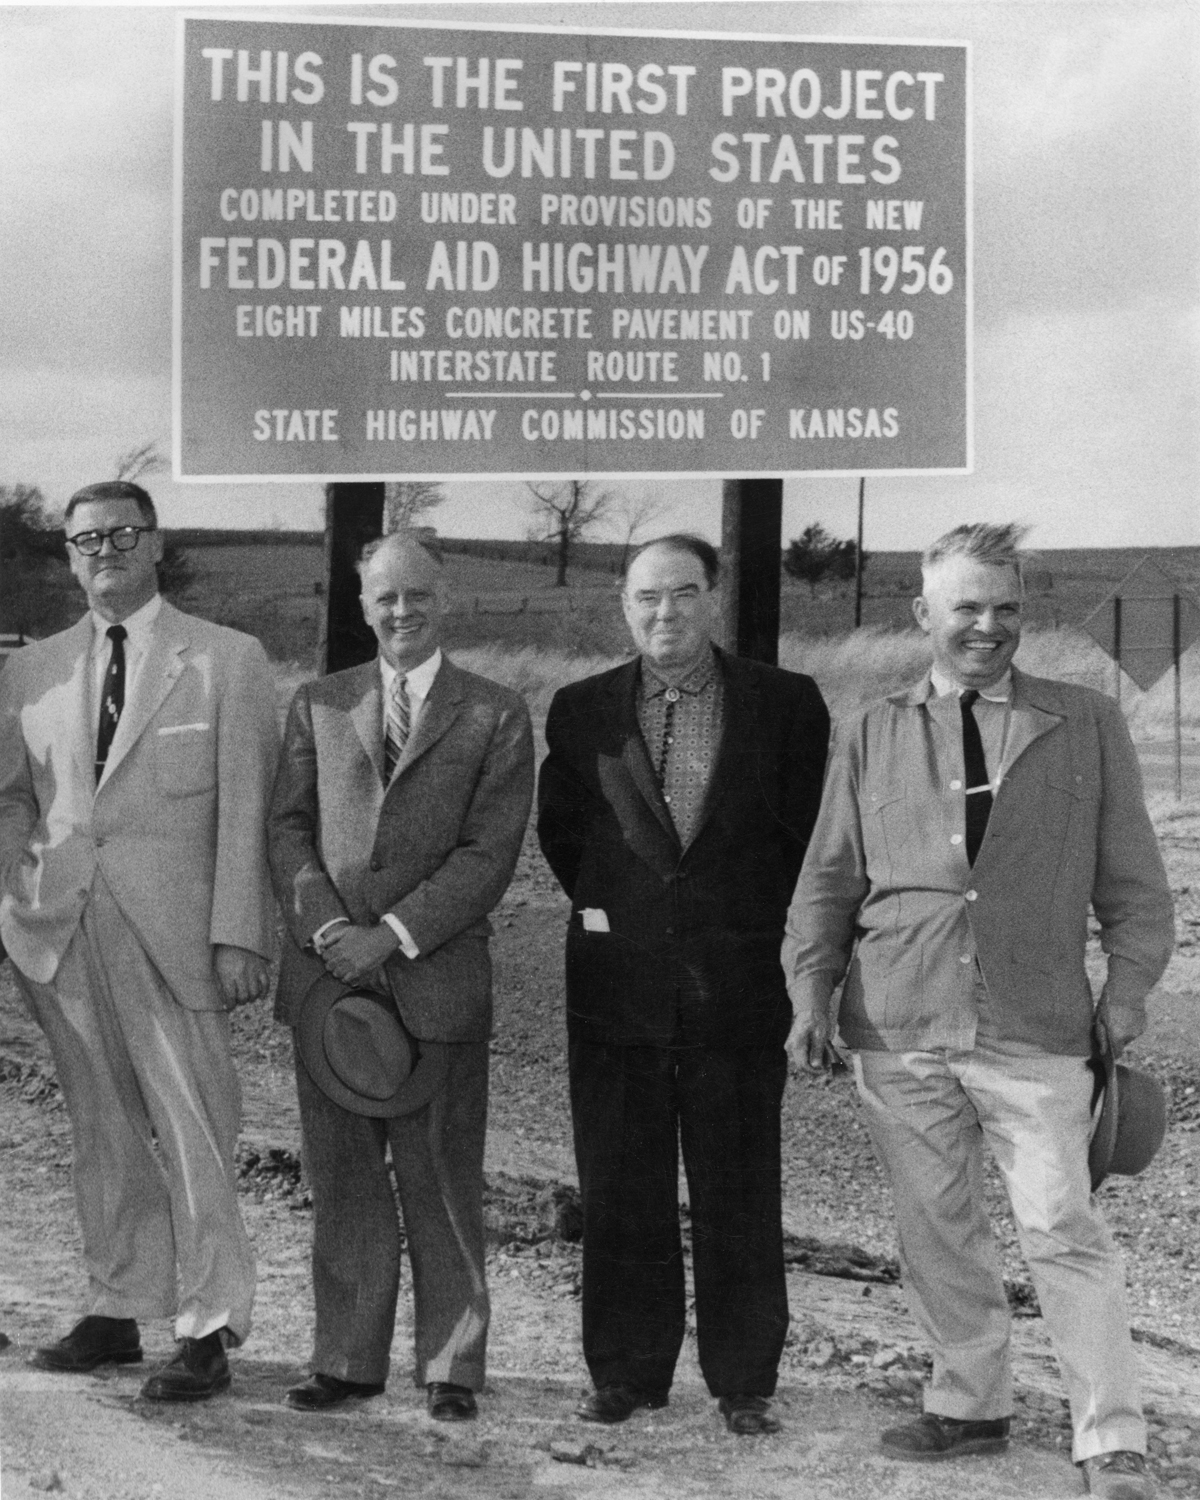 Kansas is the home of the first project completed under the 1956 highway law for an 8 mile section of U.S. 40 (I-70) west of Topeka. Pictured here are four representatives of the engineering contractor and the Kansas highway commission mark the occasion. (photo credit: Kansas Department of Transportation)